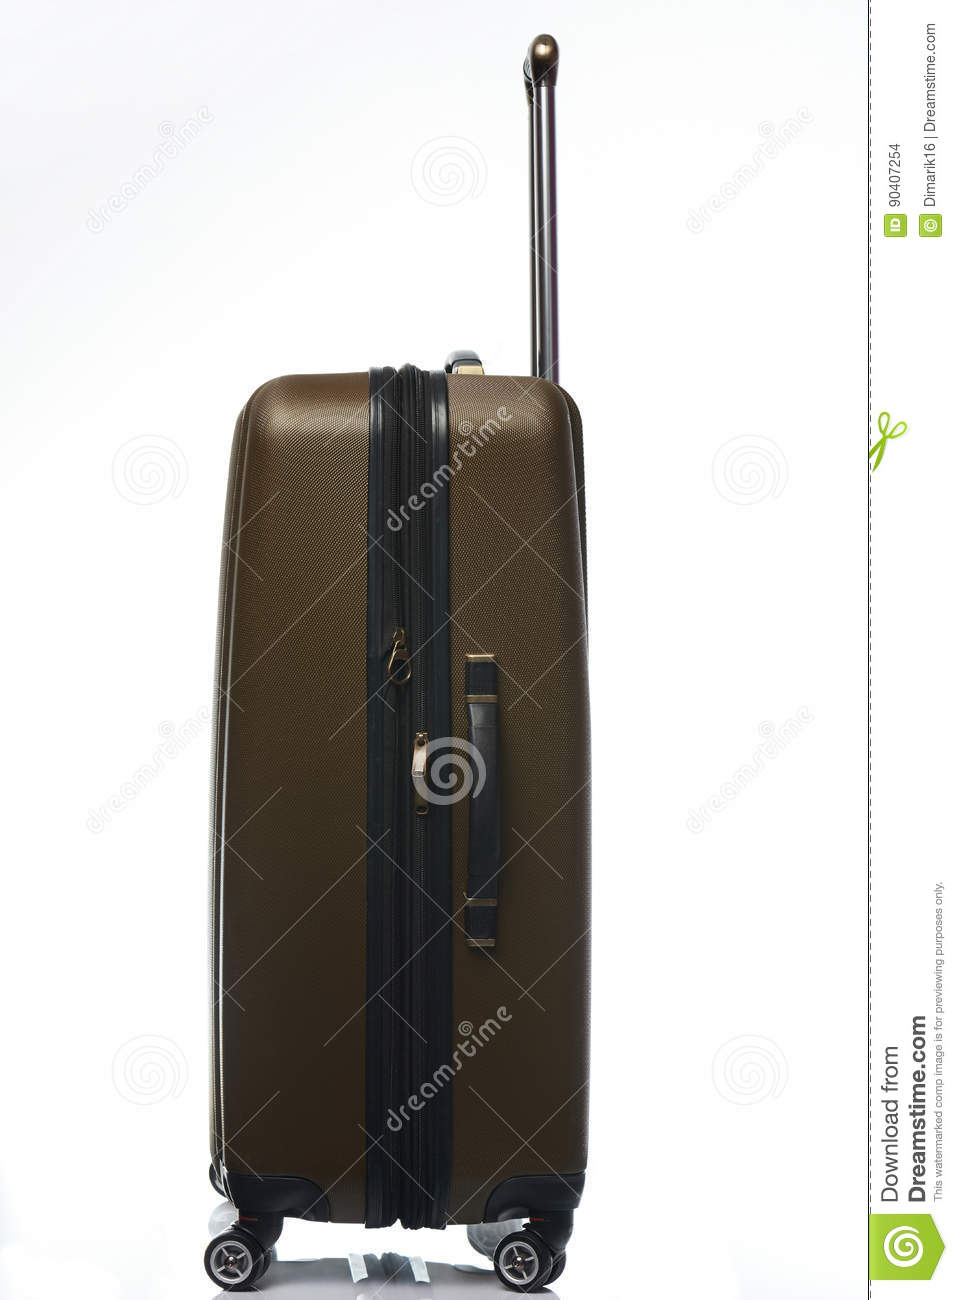 One Large Plastic Brown Suitcase Stock Photo - Image: 90407254